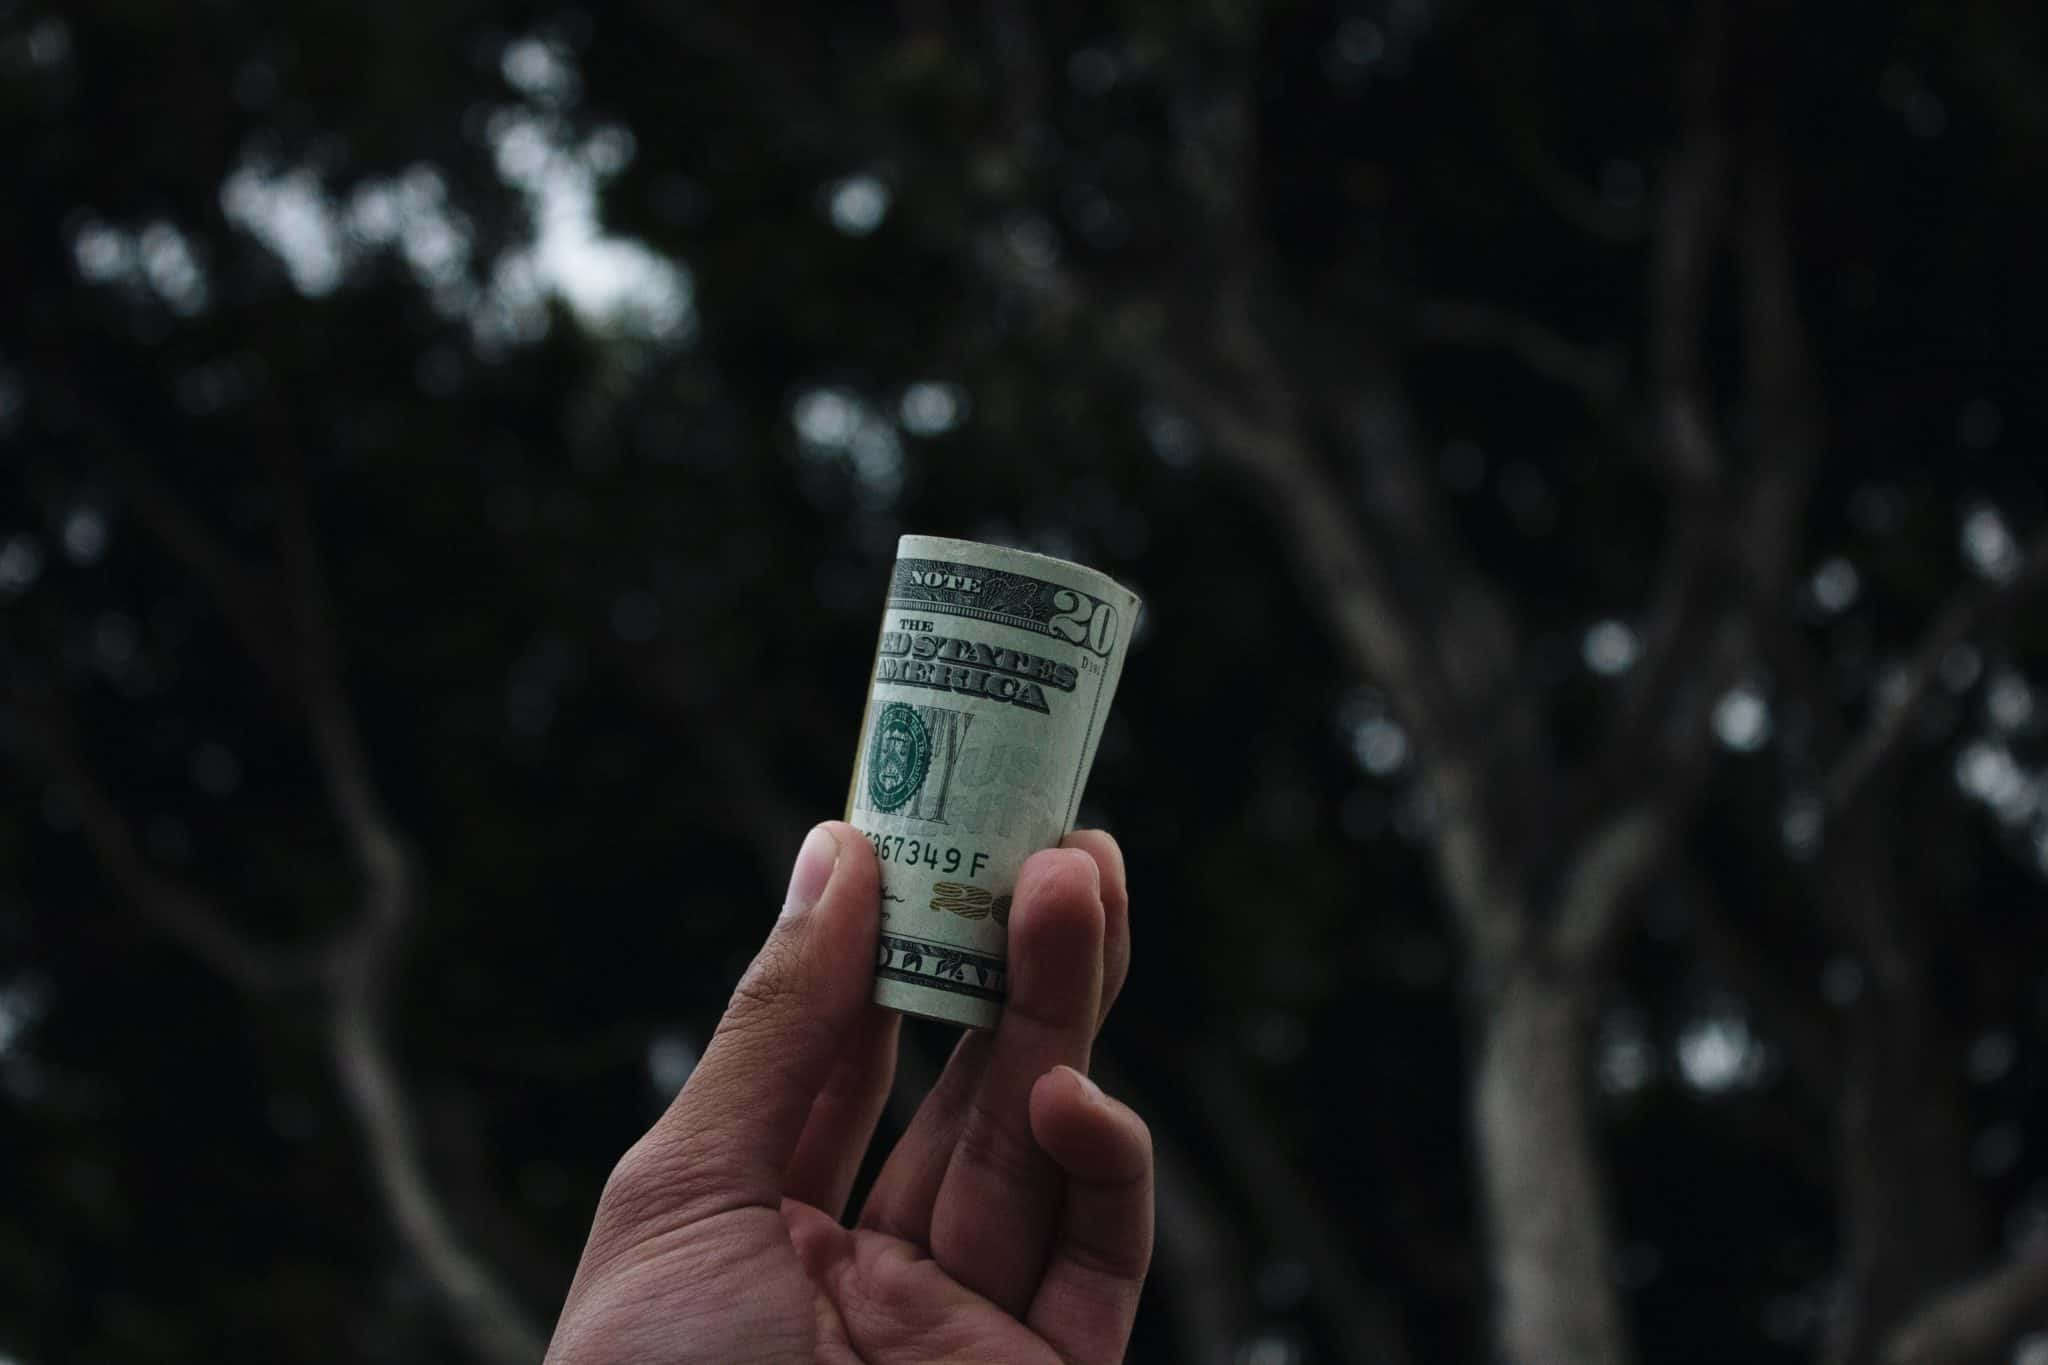 6 Ways to Make Money as a Personal Trainer That Don't Trade Time for Money